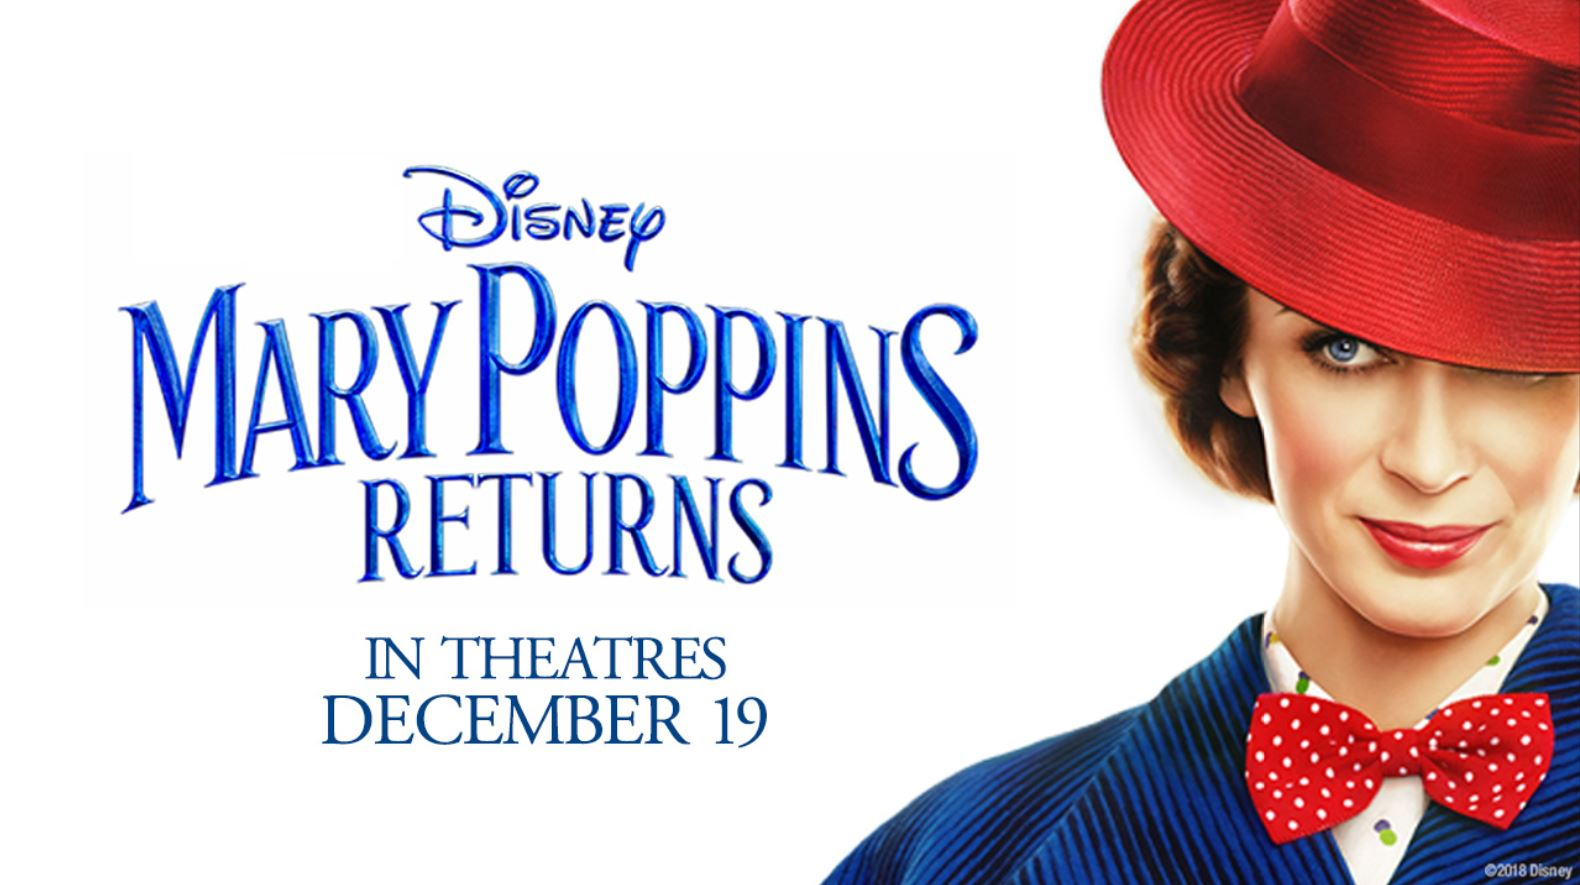 You could be one of the first to see Disney?s Mary Poppins Returns